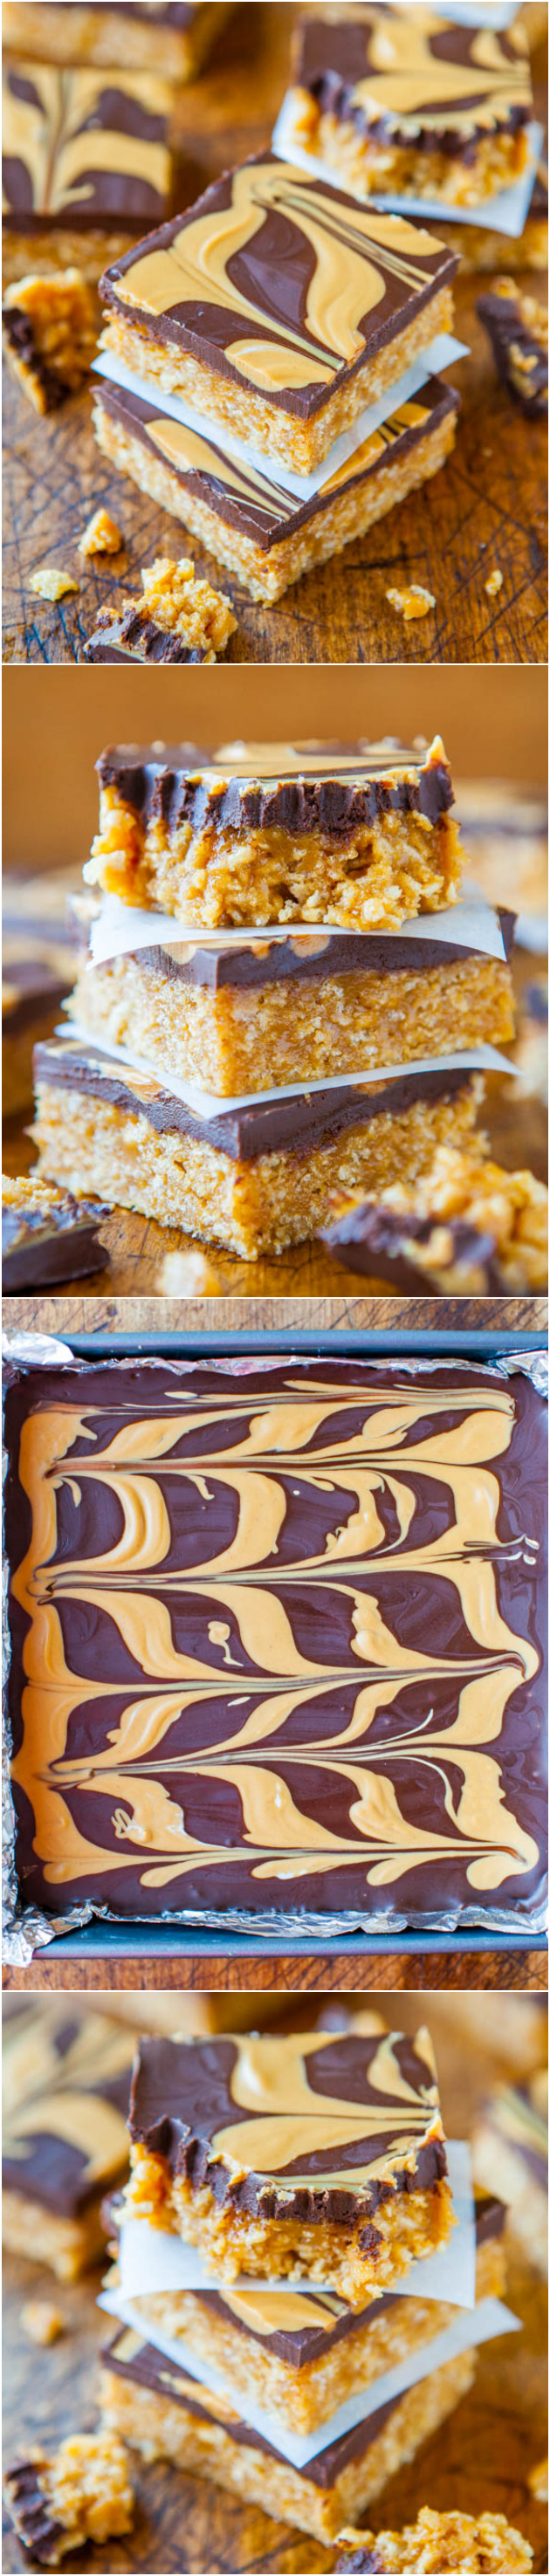 Chewy Peanut Butter and Chocolate Cereal Bars (no-bake, vegan, gluten-free) - These soft & chewy bars are packed with PB & topped with chocolate and more PB for all the peanut butter lovers! Easy recipe at averiecooks.com